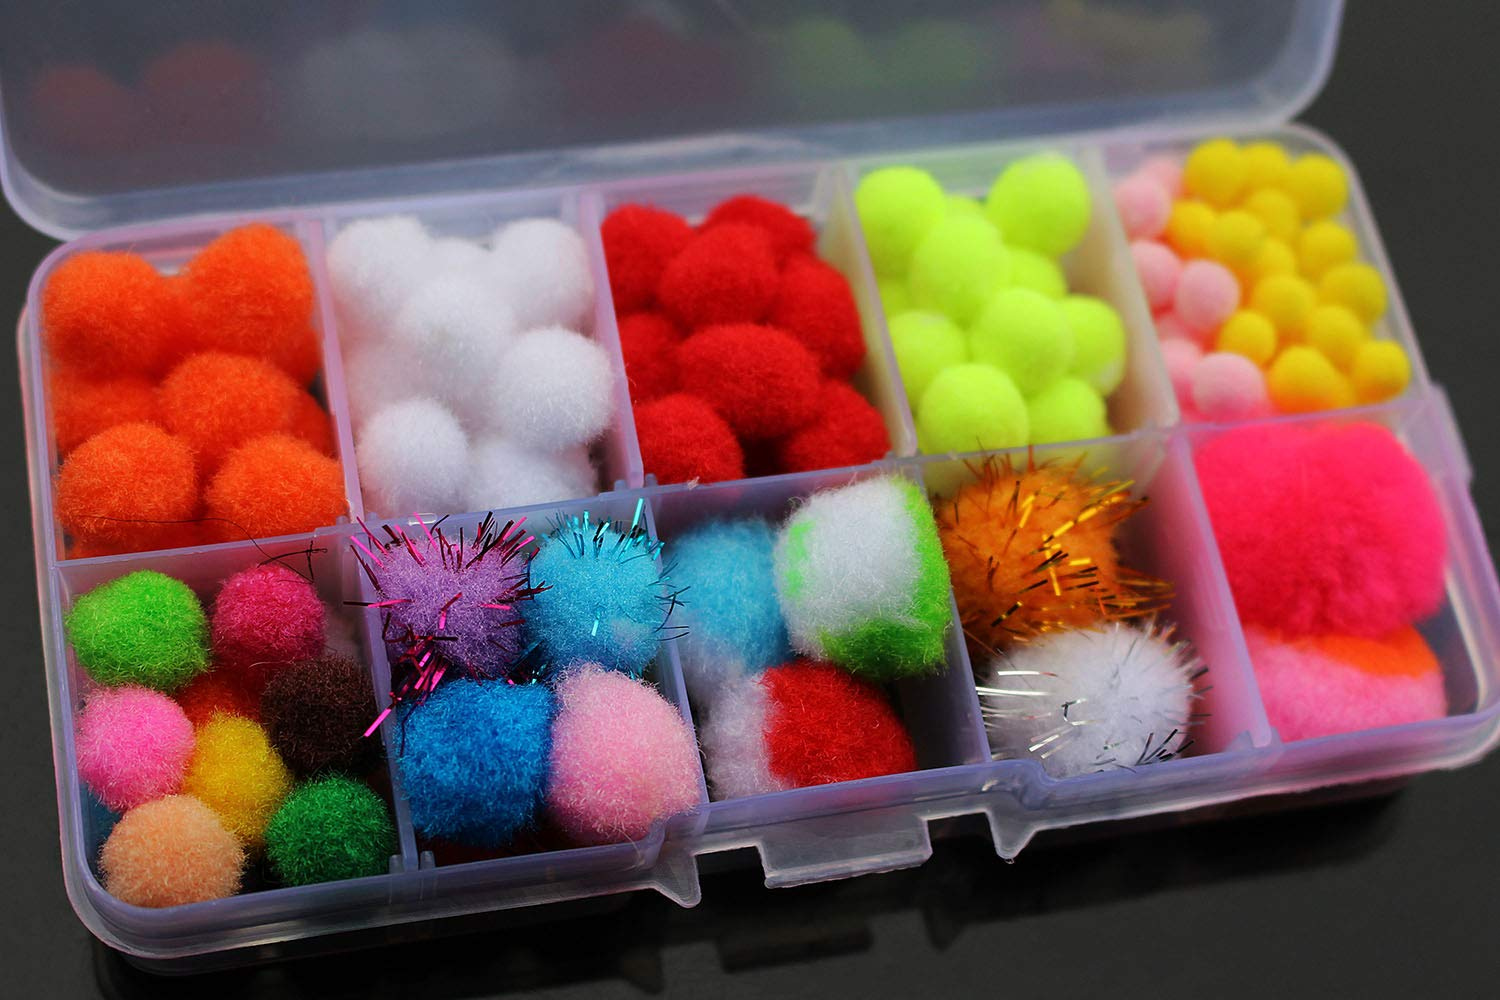 100 pcs Assorted 100 Assorted Egg GloバグFly pcs Fishing Trout Egg Fly Tyingマテリアルフリーボックス B072JVYVMK, エスニック&アジアン雑貨アジャラ:21299af8 --- hasznalttraktor.e-tarhely.info